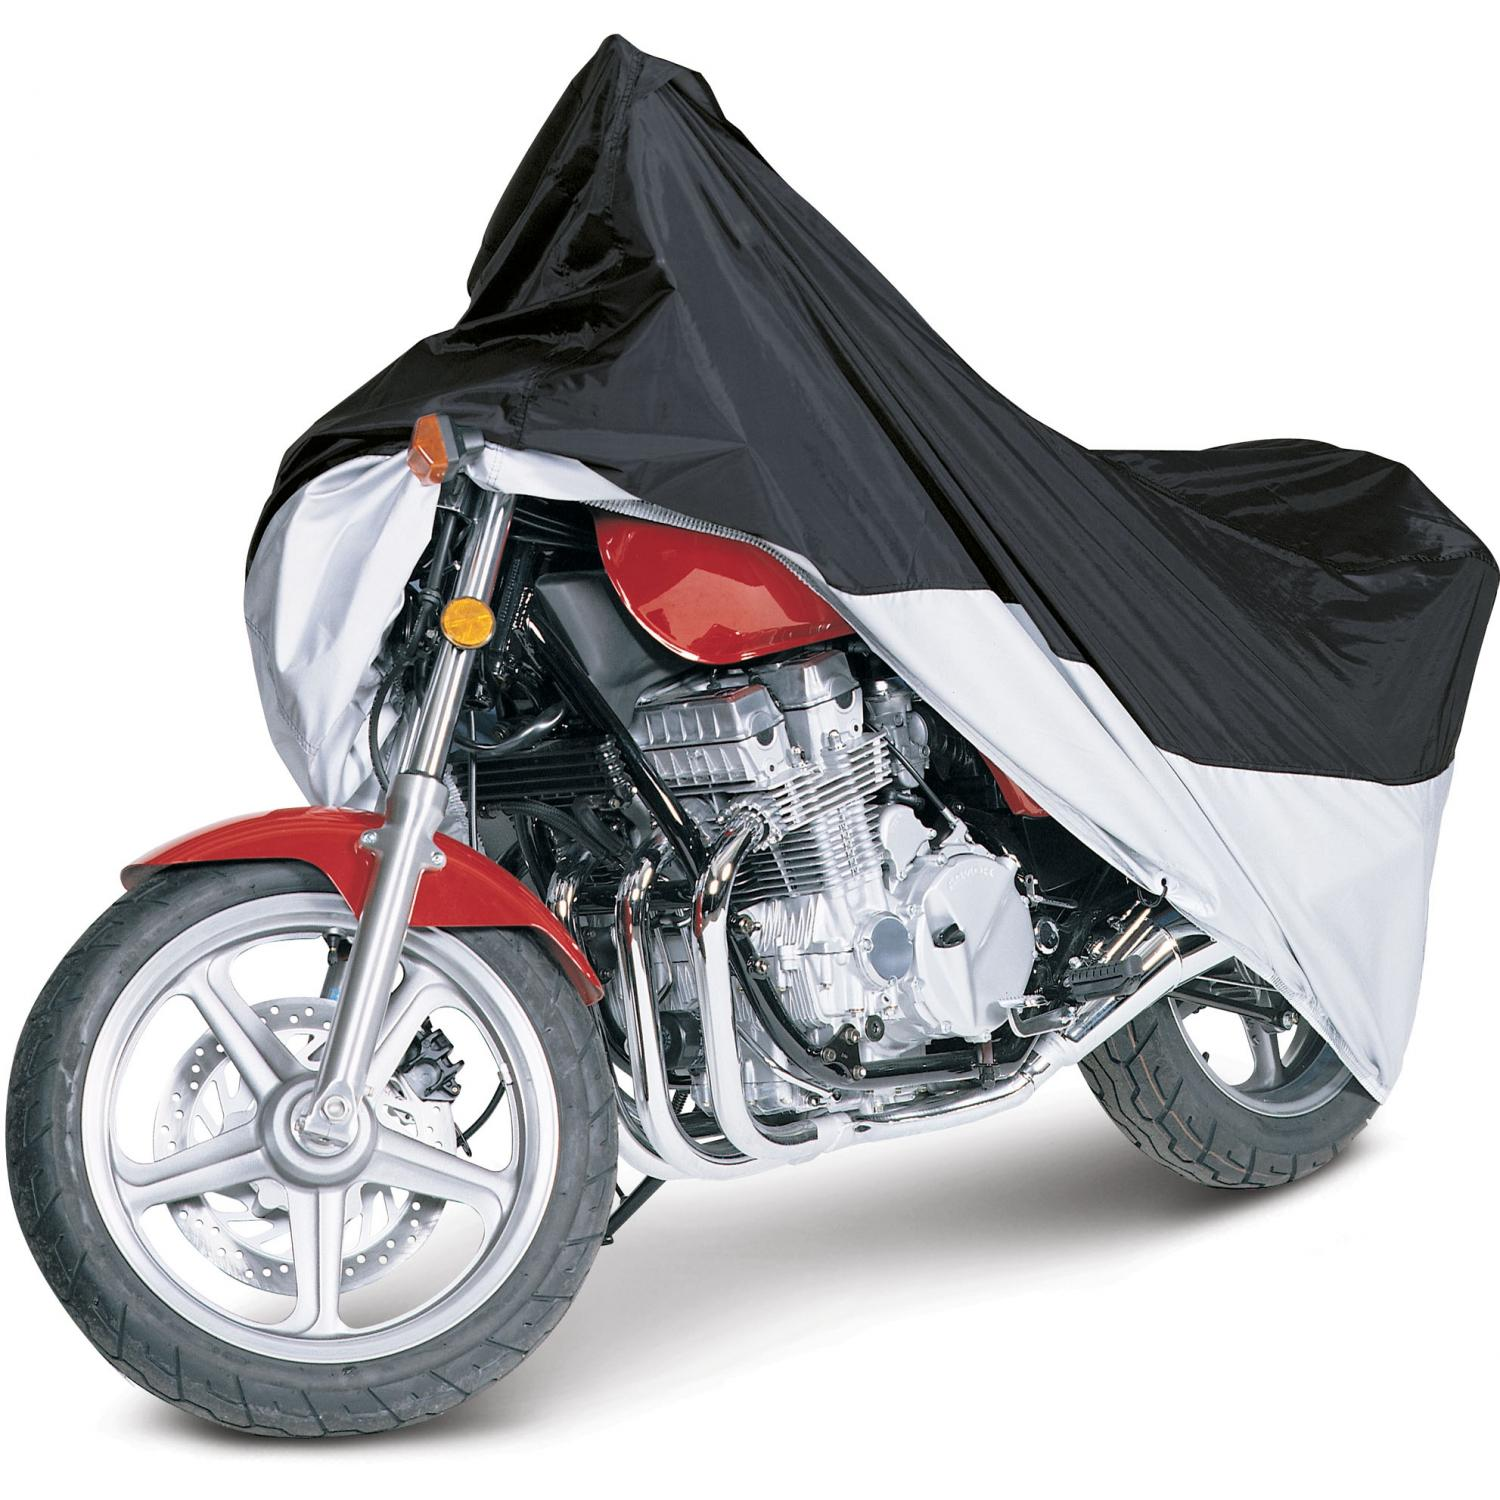 Classic Accessories MotoGear Motorcycle Cover - Black/Silver - Large